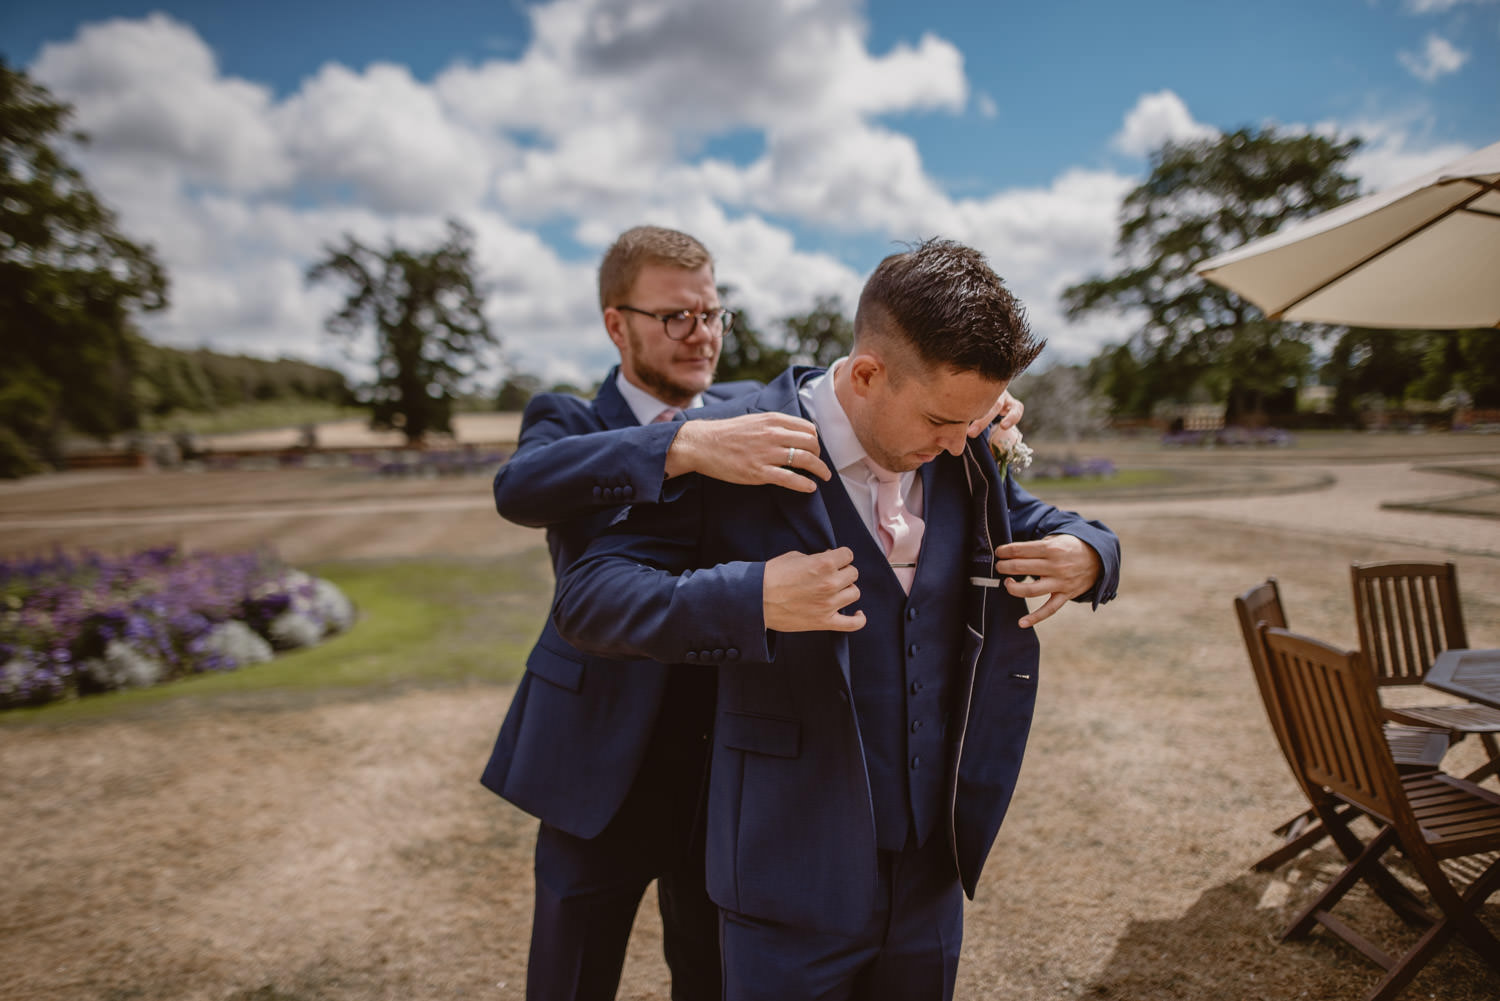 Groomsmen helping the Groom to get ready for the wedding